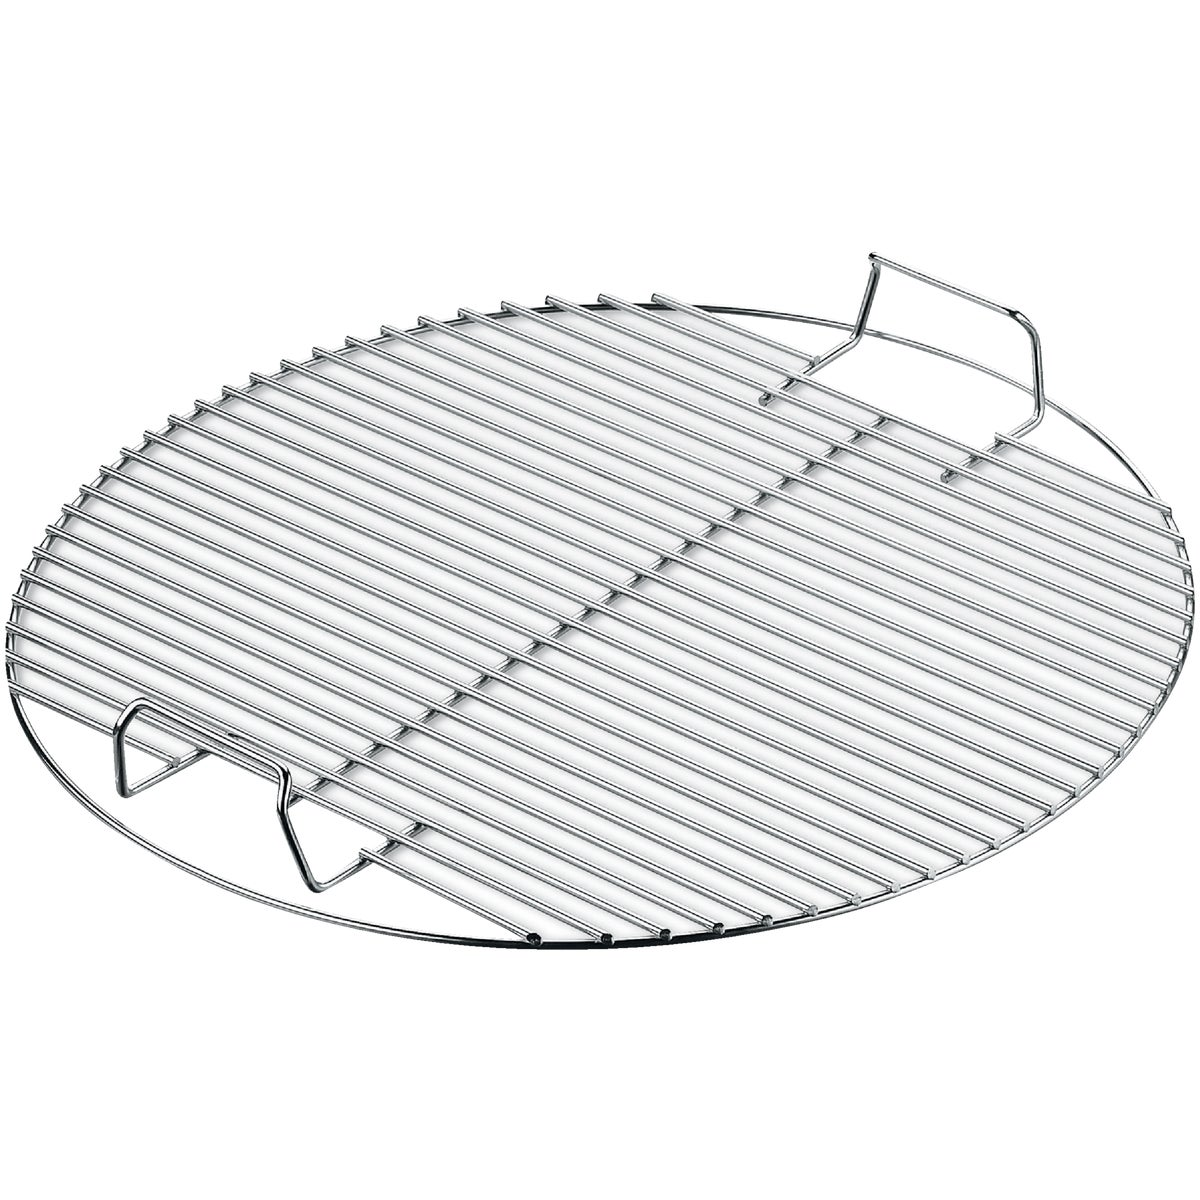 "18.5"" REPL COOKING GRATE - 7432 by Weber"